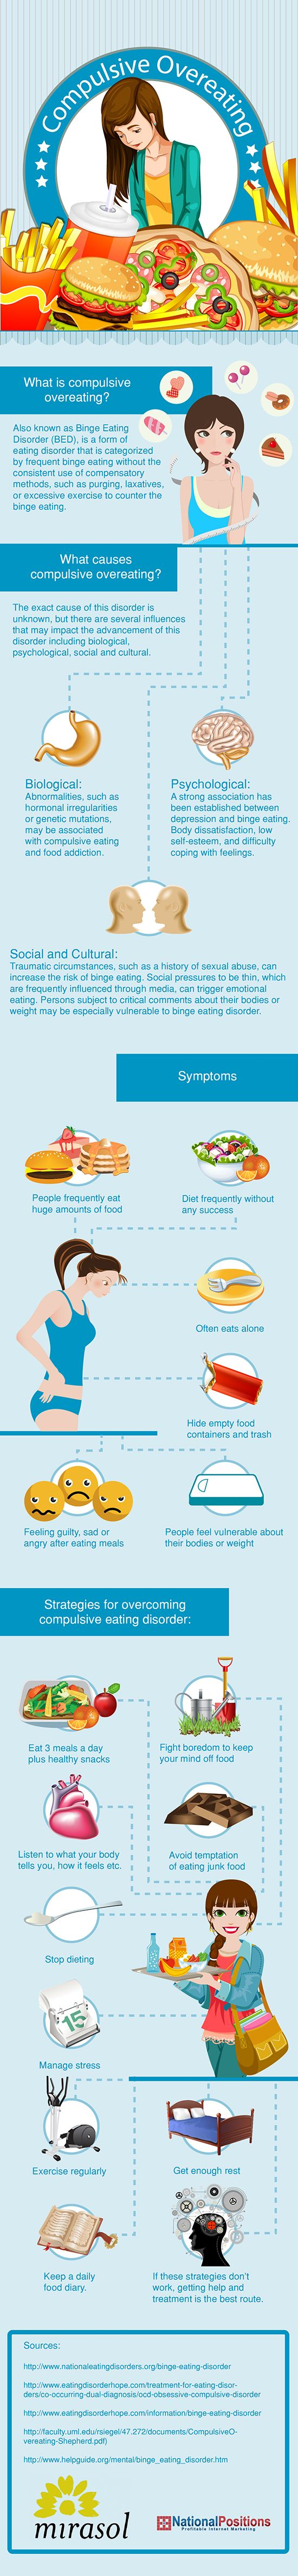 Infographic: Compulsive Overeating Disorder . Compulsive overeating, also known as binge eating disorder (BED), can affect many people and their families.